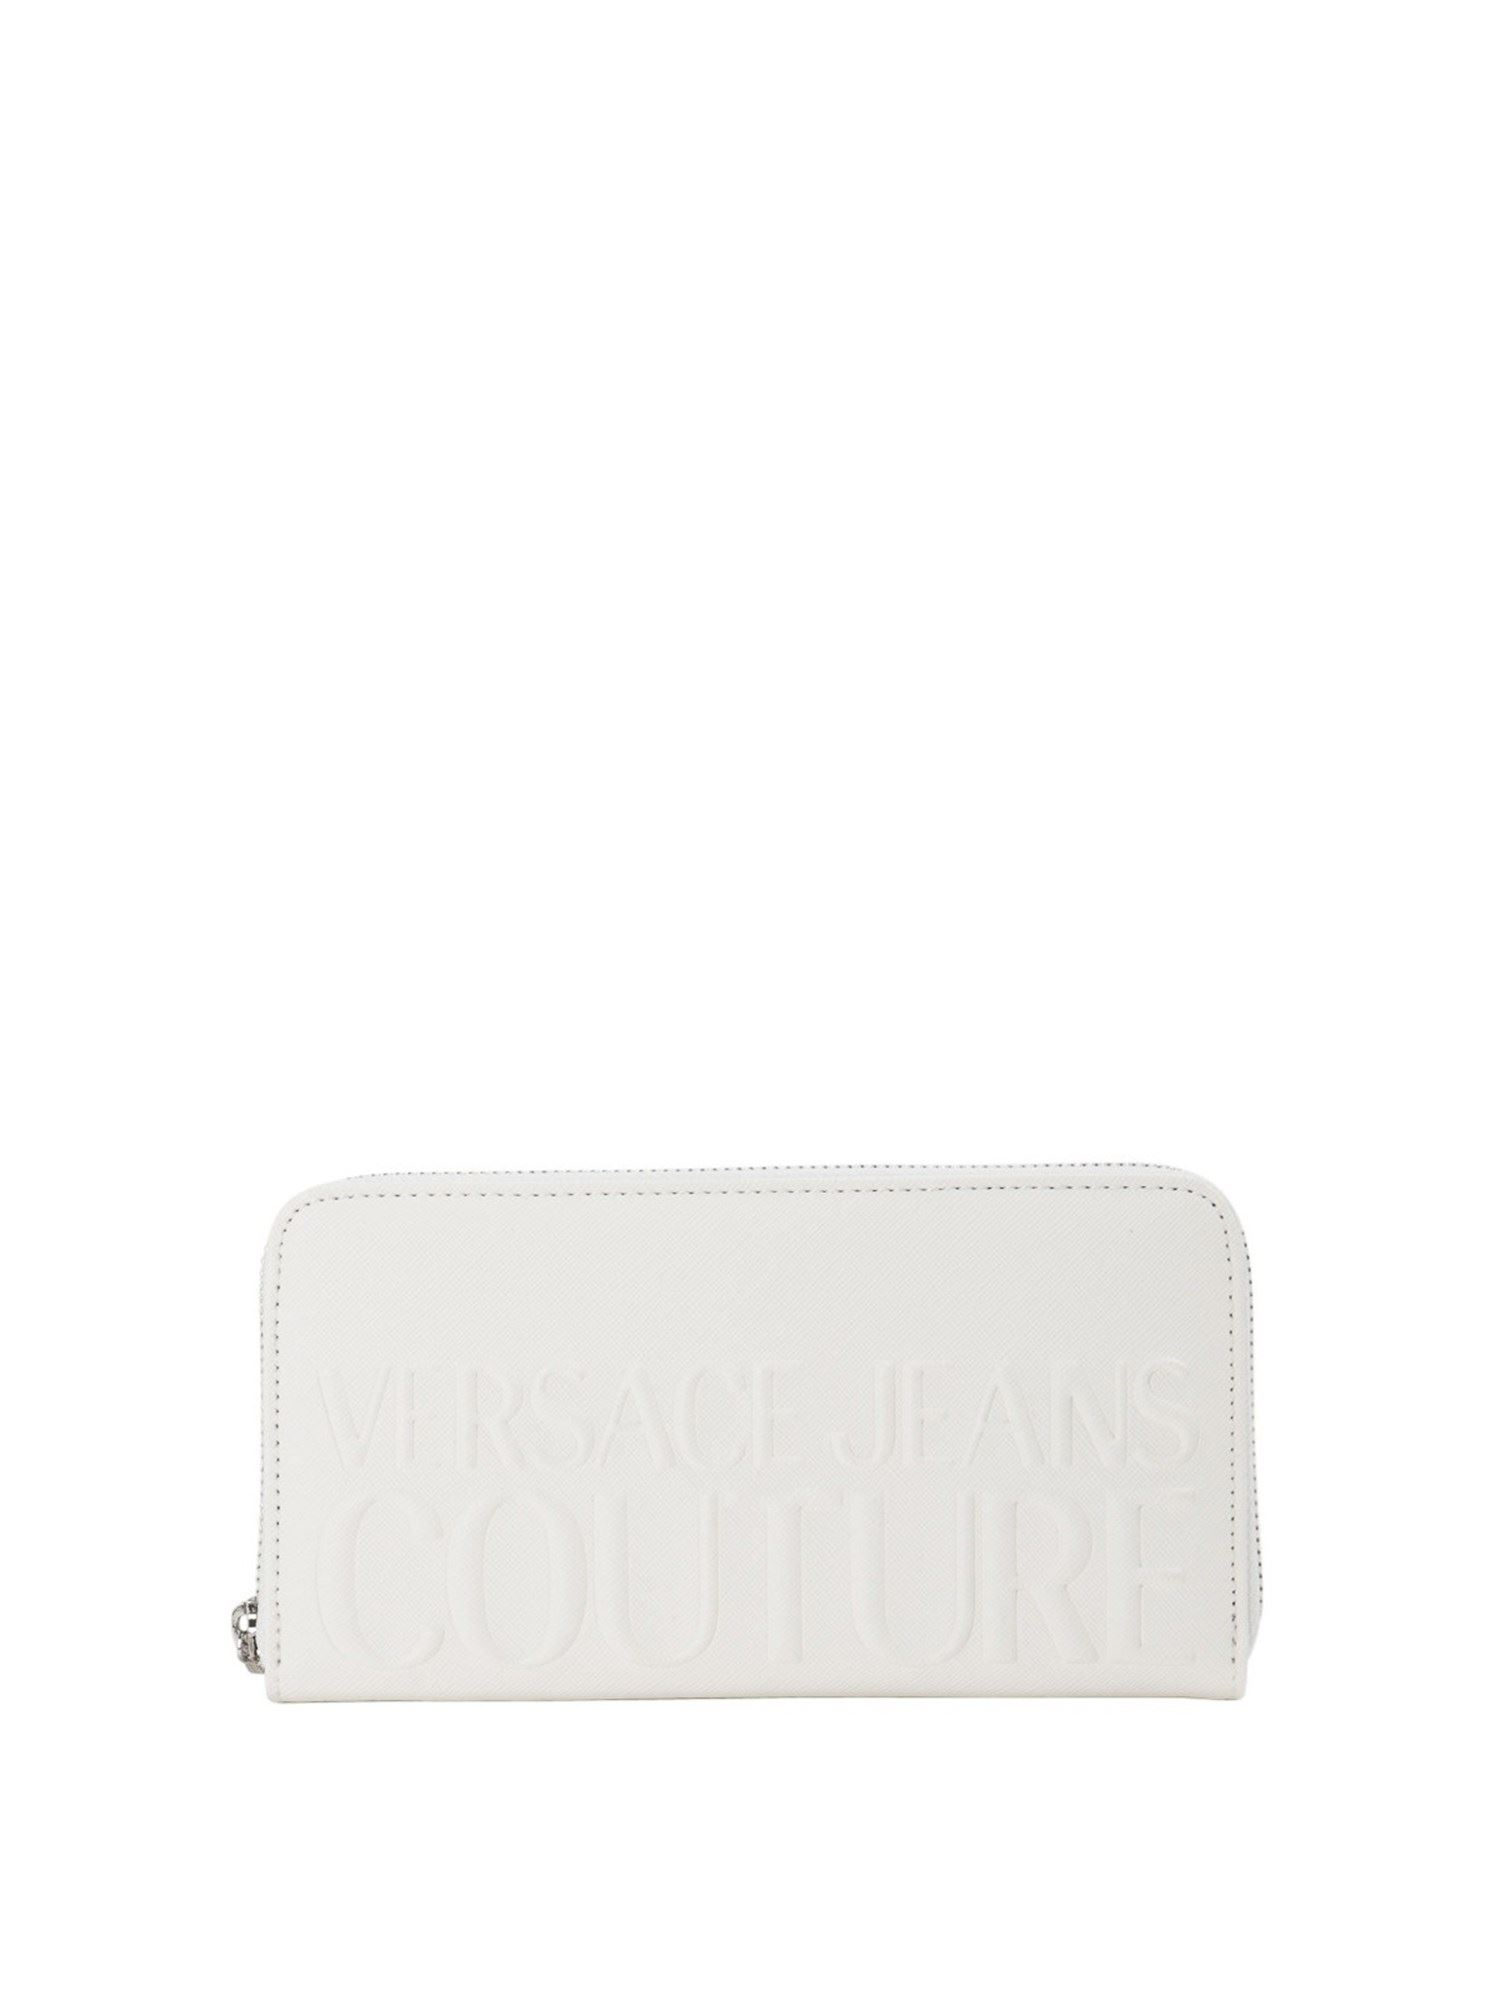 Versace Jeans Couture Wallets EMBOSSED LOGO WALLET IN WHITE